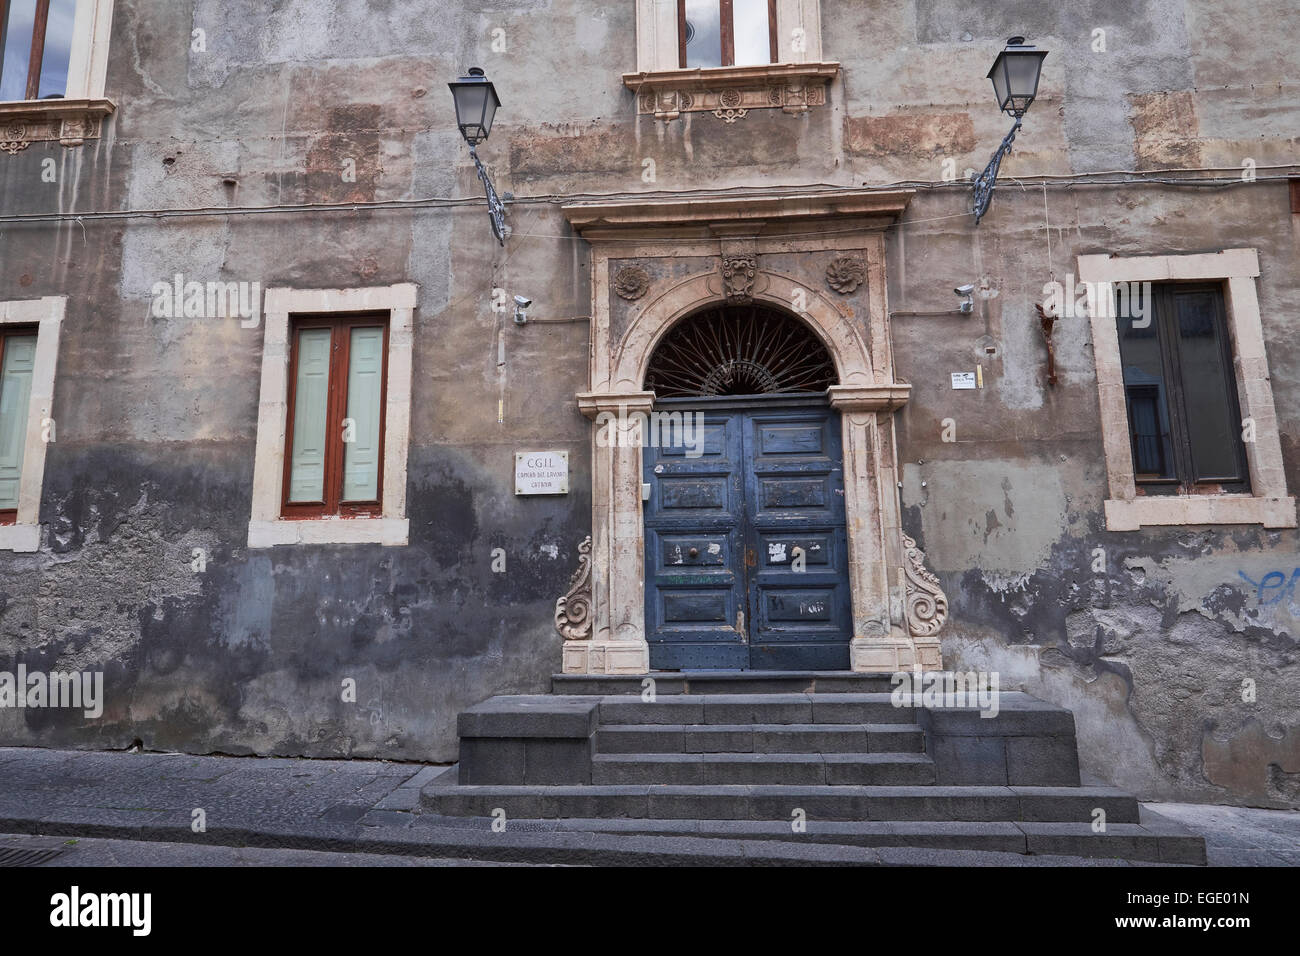 Old Rustic Building Architecture In Catania Sicily Italy